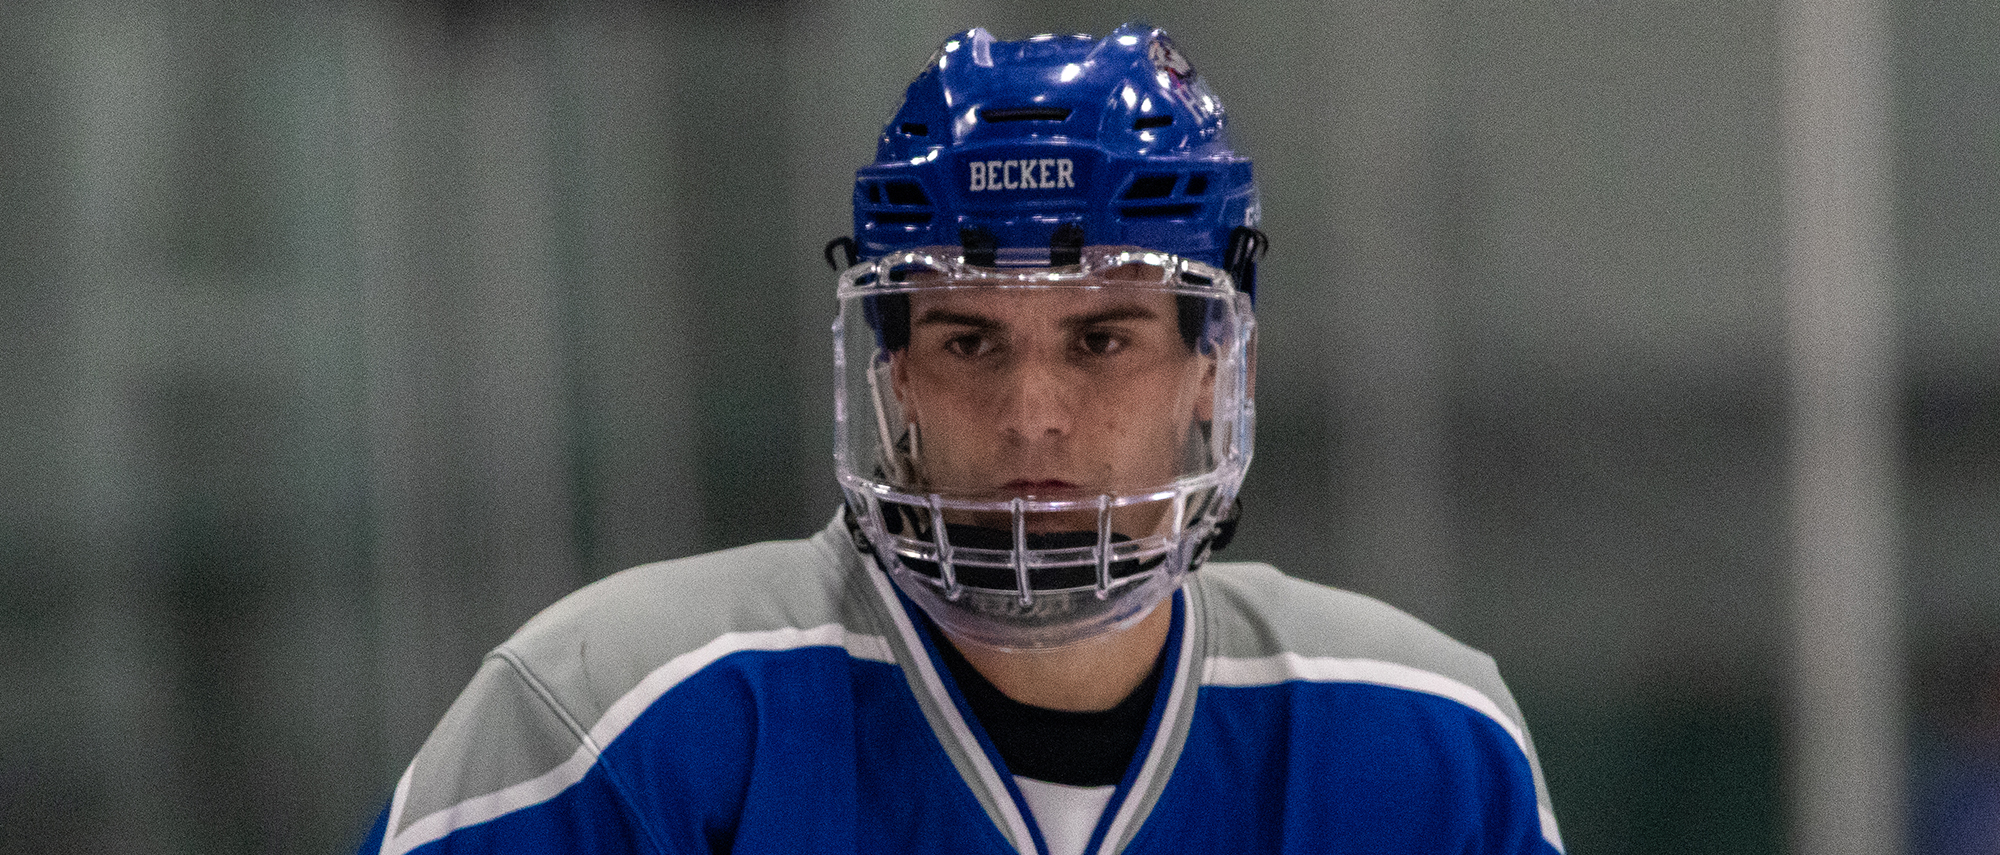 Charles Costello, Becker men's ice hockey at Worcester State